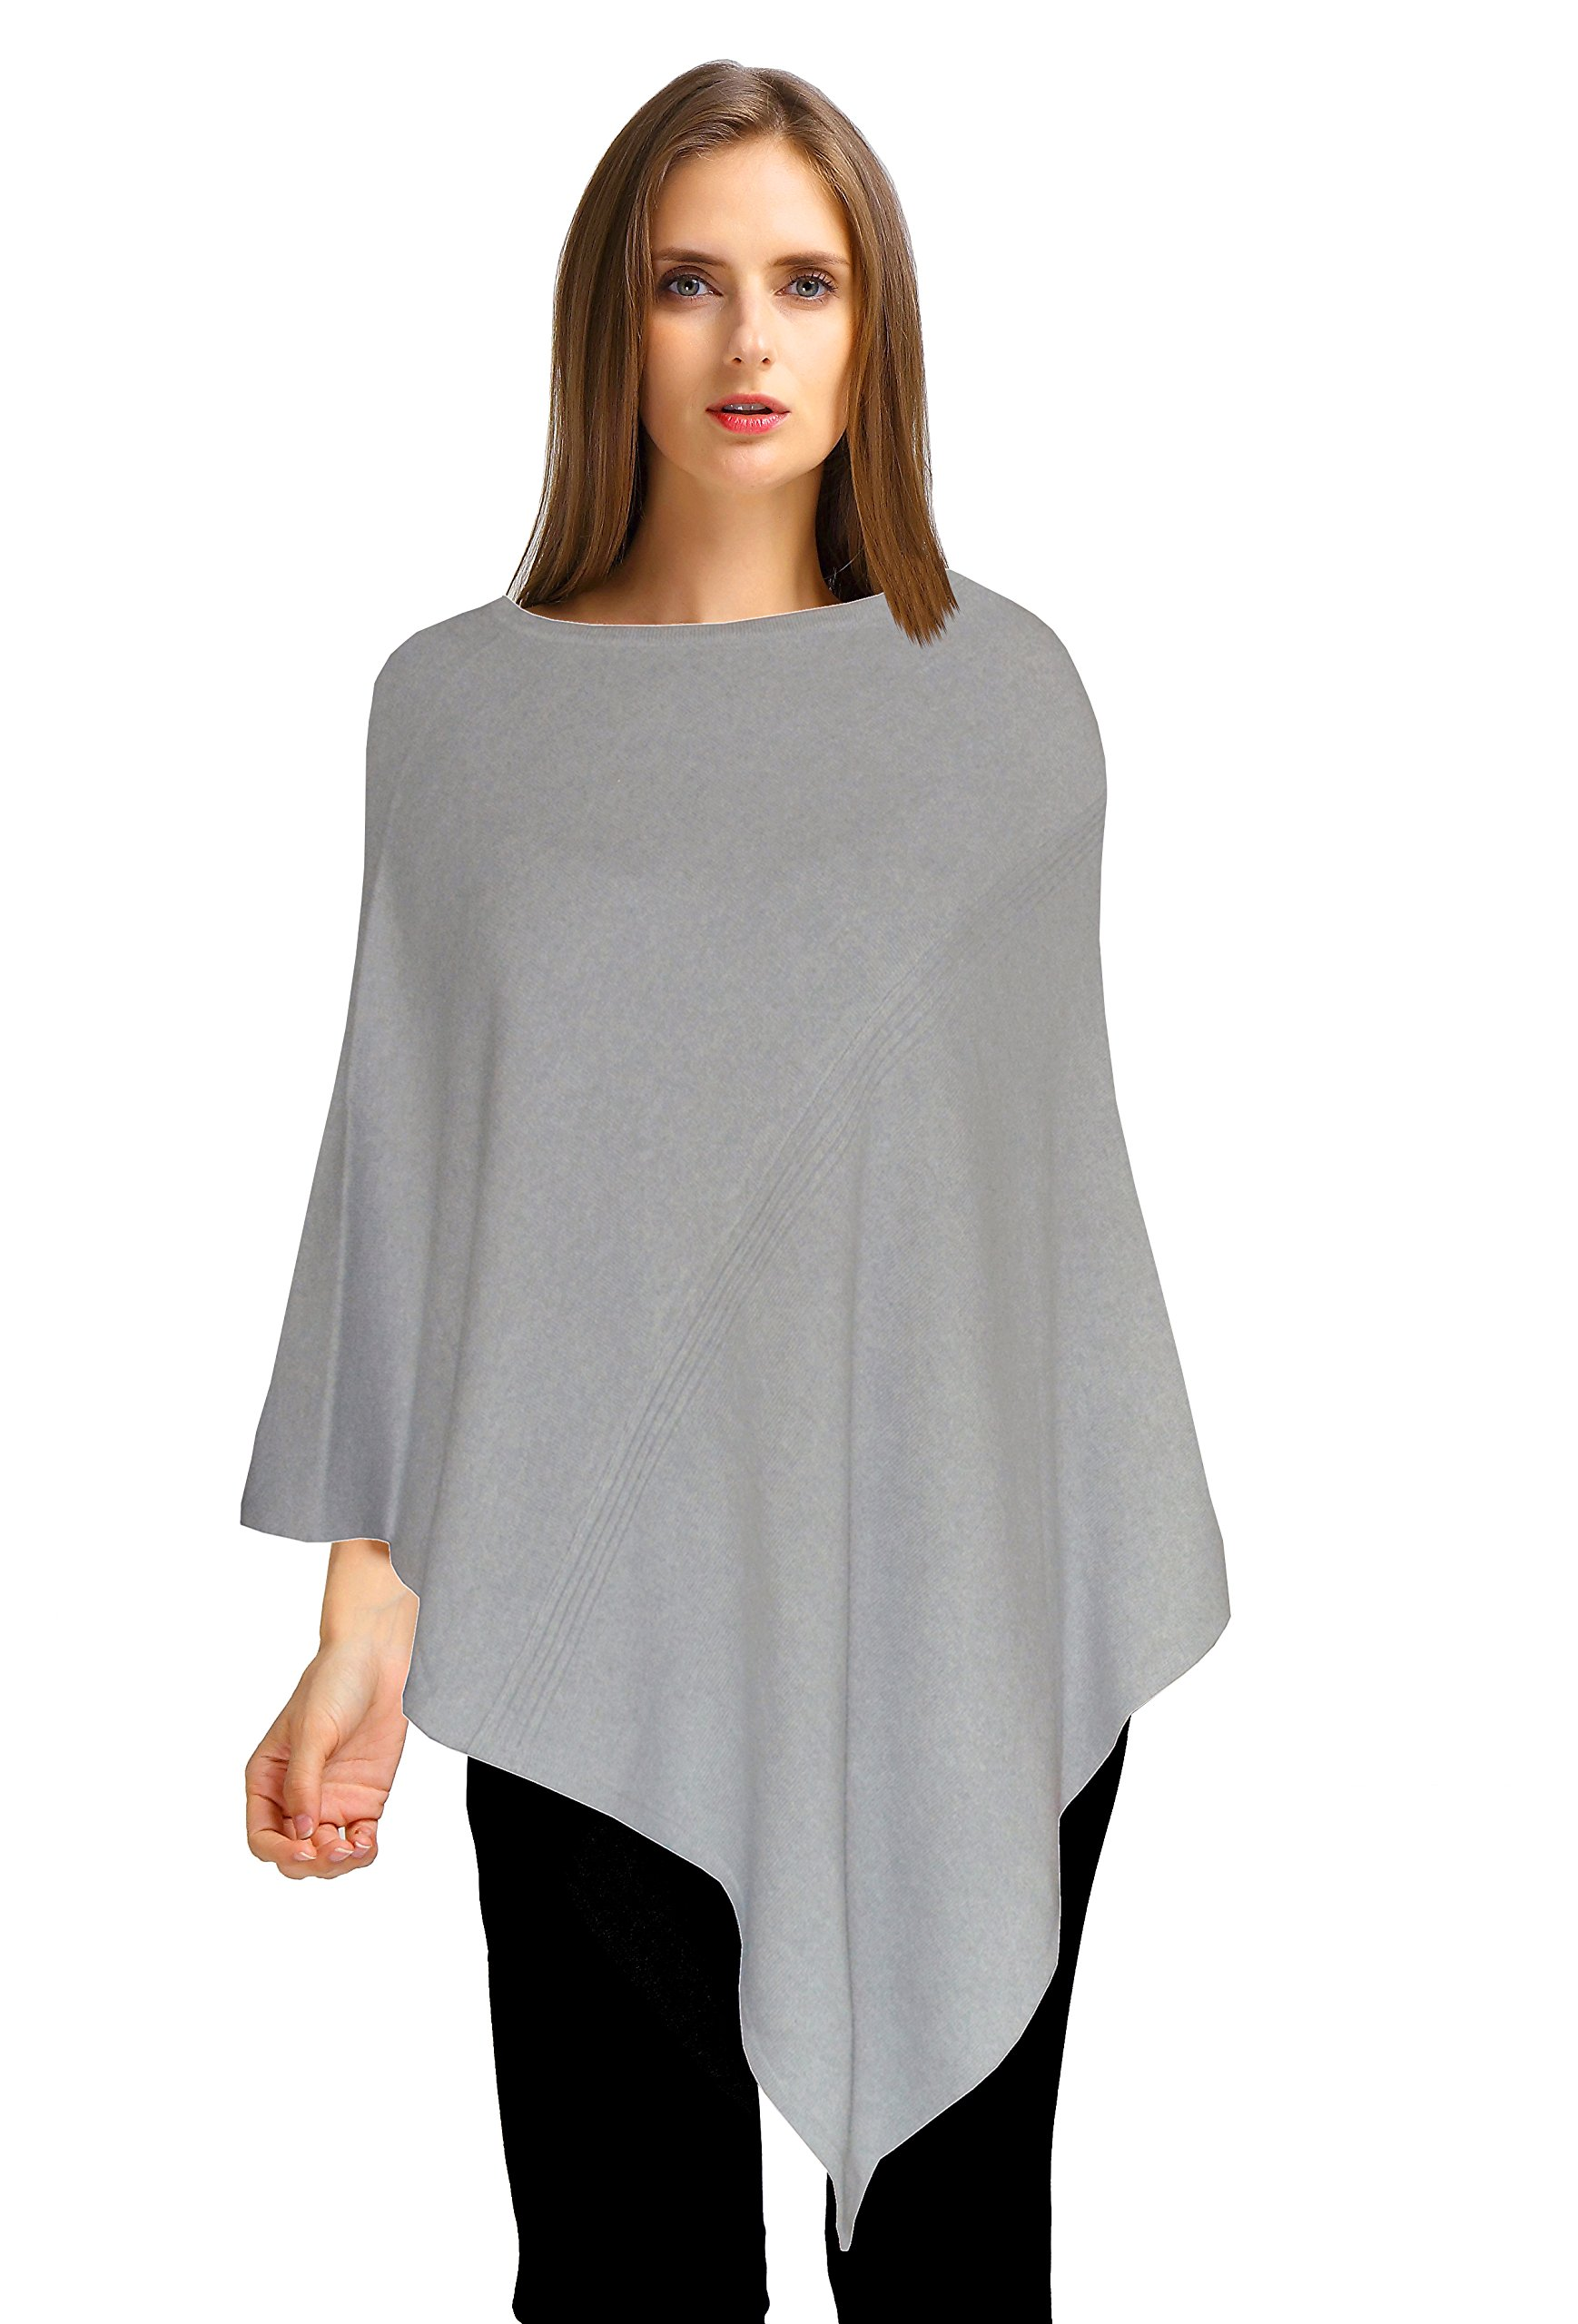 Ellettee, 96% Pure Cashmere Knit Pullover Poncho Dress Topper Travel Wrap Shawl Cape Sweater Cloak (Lime)